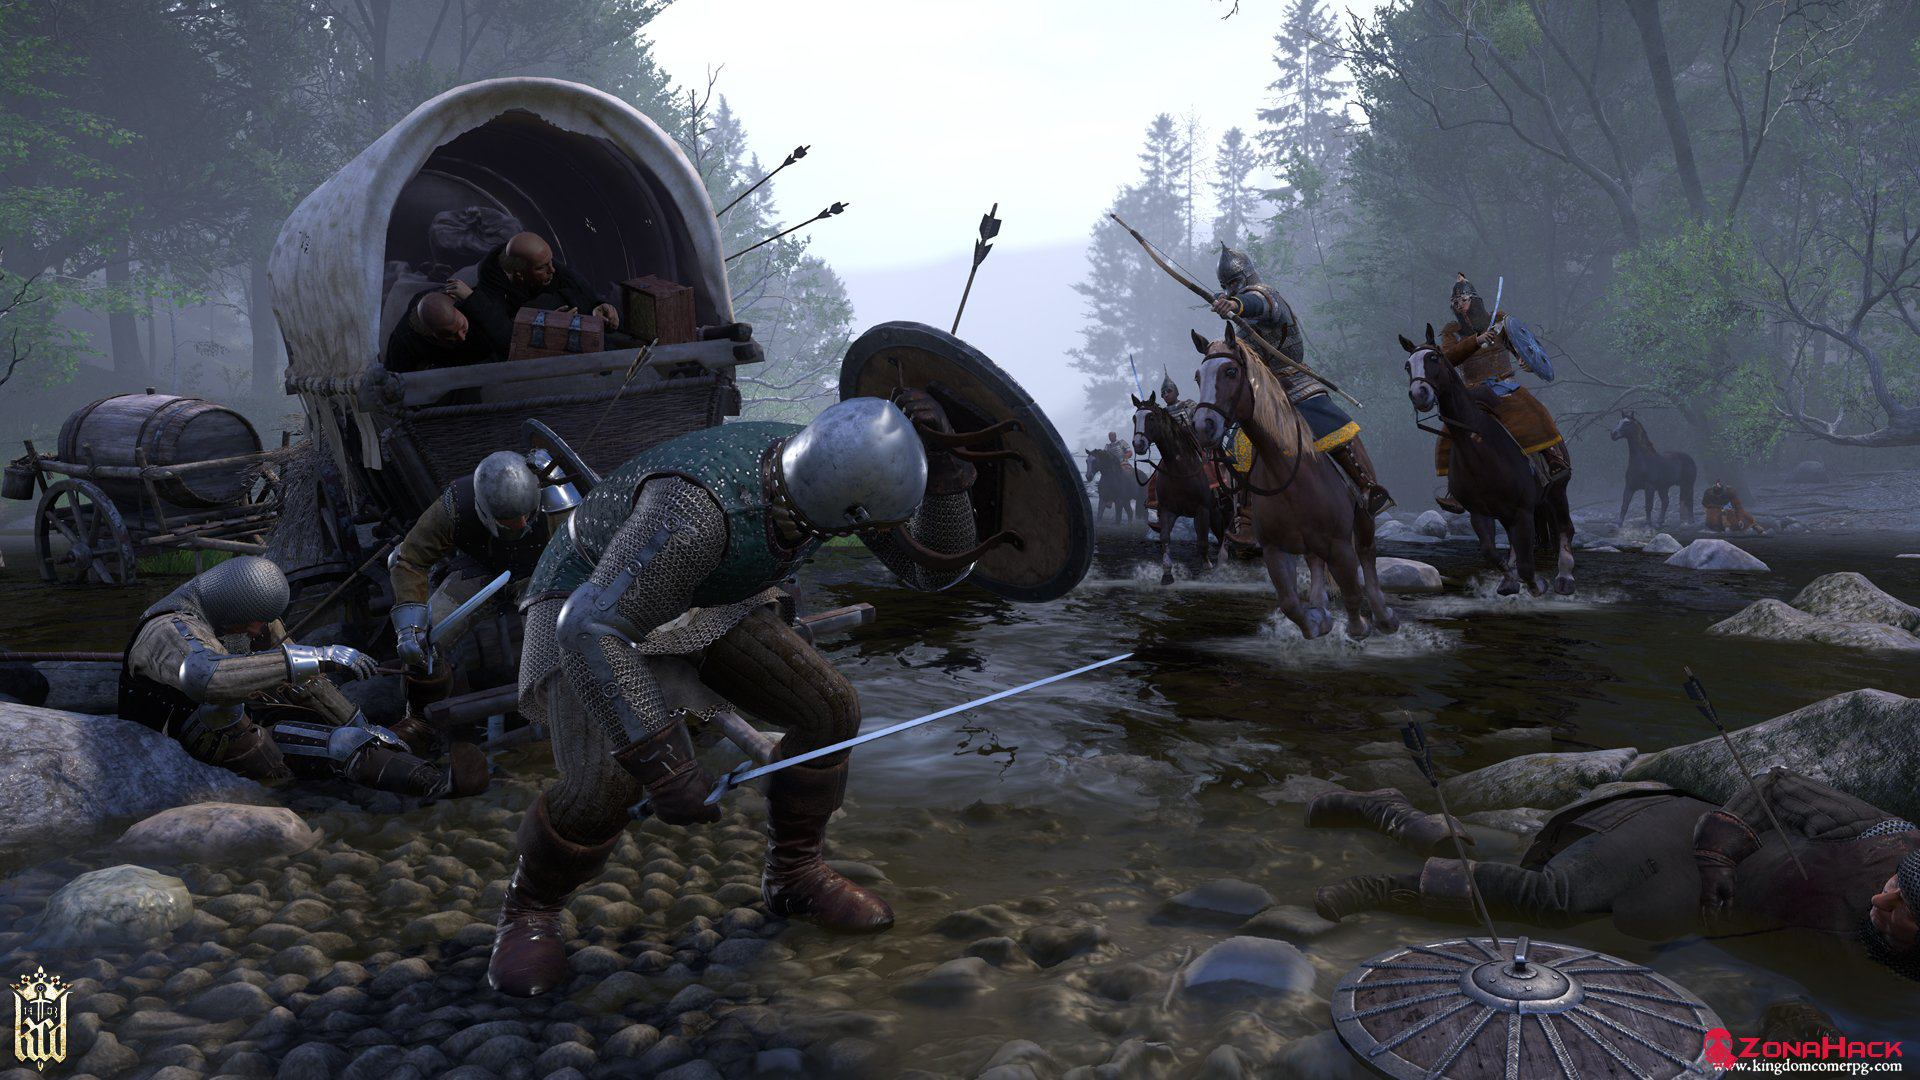 Трейнер к игре Kingdom Come: Deliverance (+16) v.1.2-1.9.2